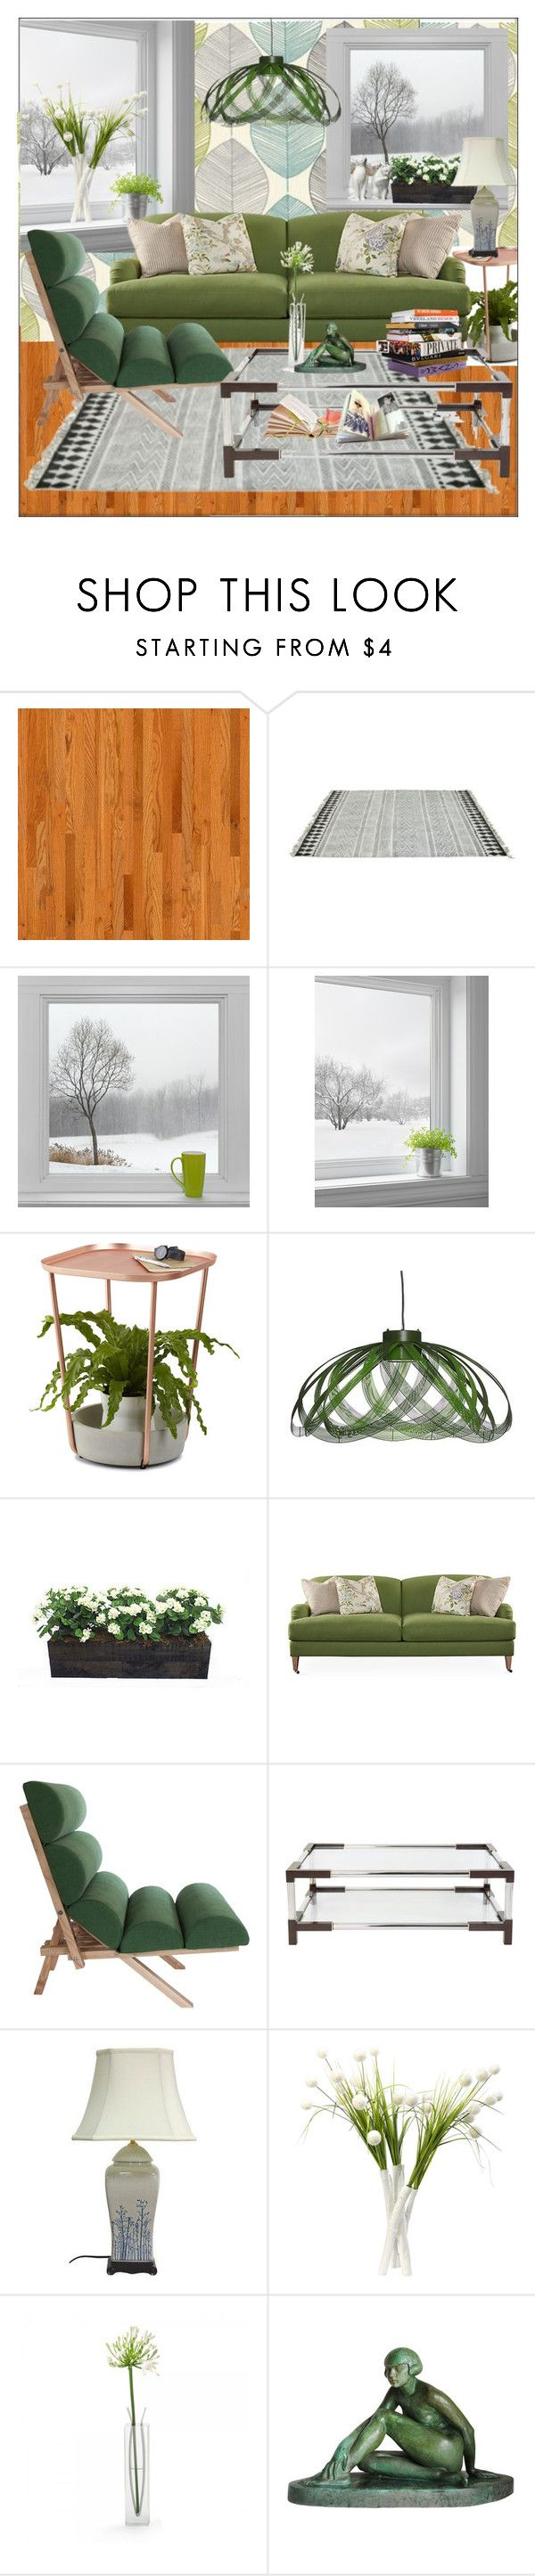 """""""Calm green on a winters day"""" by frenchfriesblackmg ❤ liked on Polyvore featuring interior, interiors, interior design, home, home decor, interior decorating, Ross & Brown, Umbra, Robin Bruce and Anna Sui"""